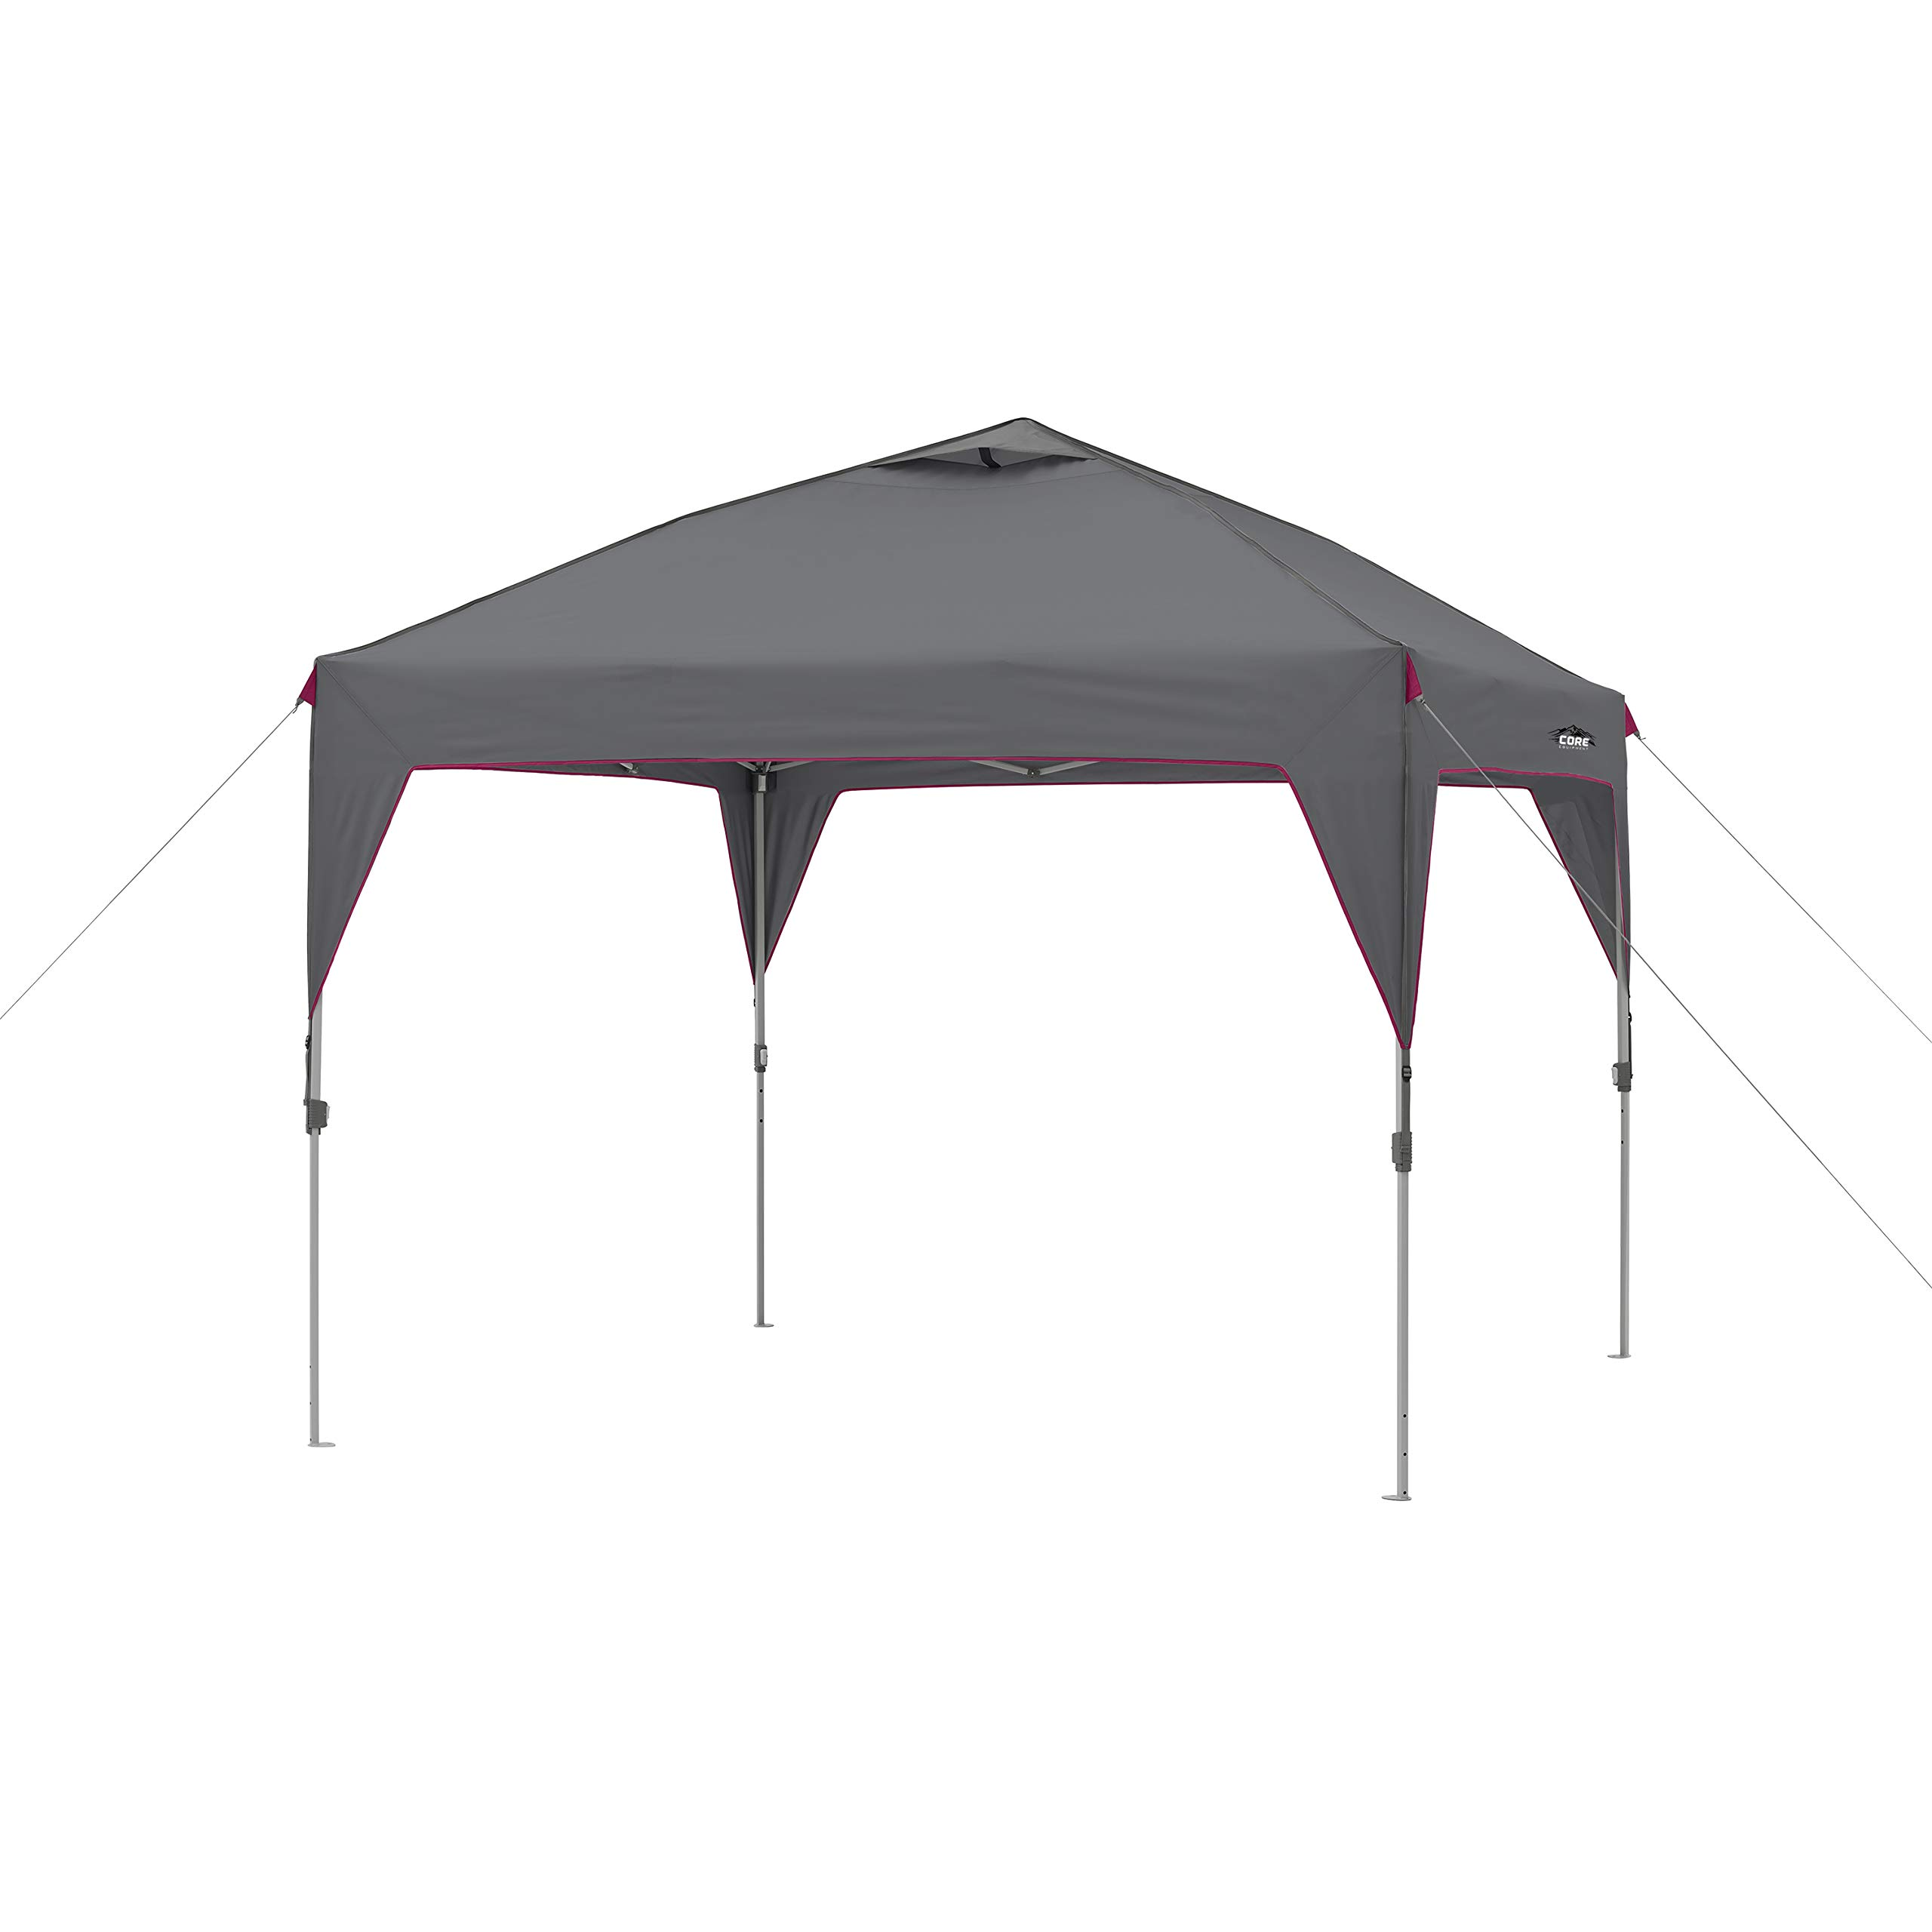 CORE 10' x 10' Instant Shelter Pop-Up Canopy Tent with Wheeled Carry Bag (Seal Gray) by CORE